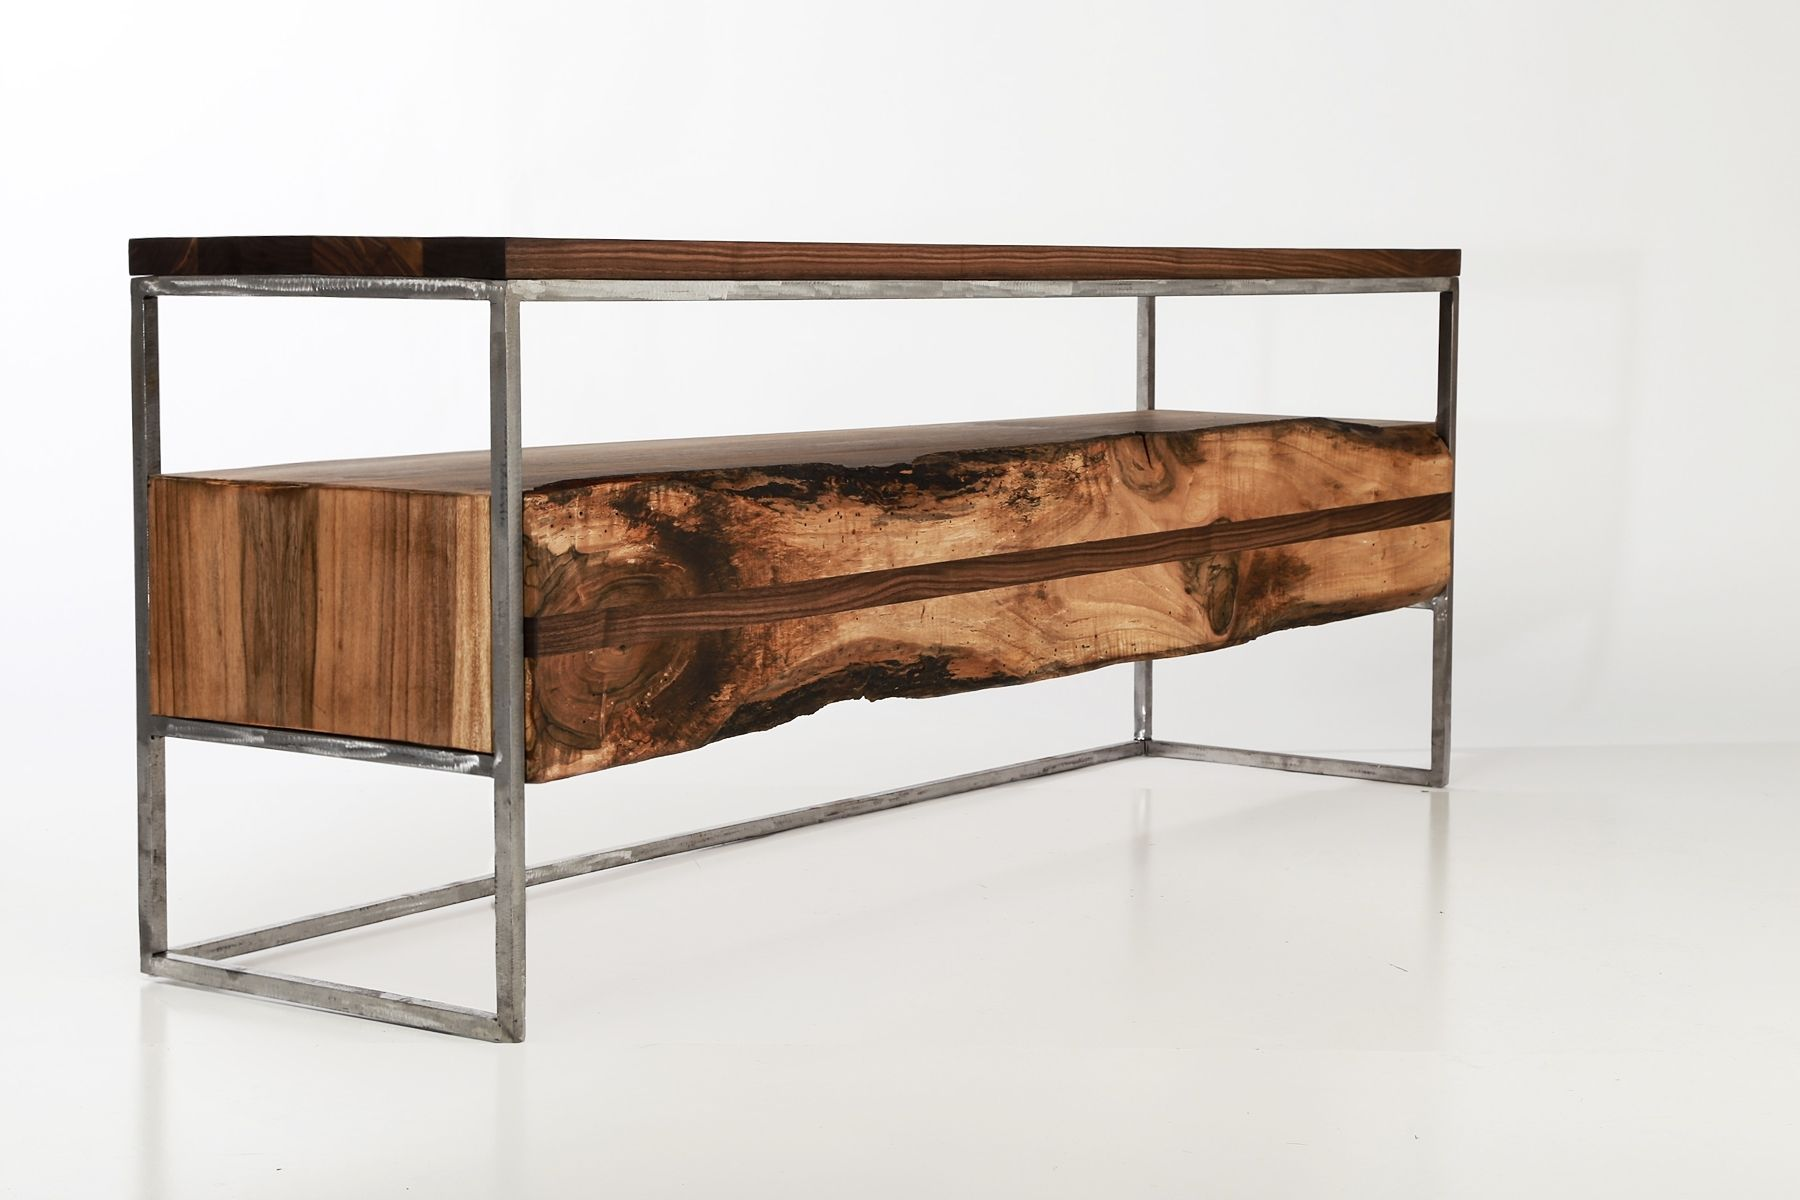 hand made flitch media console stand industrial rustic anton wood accent table custom pulaski furniture outdoor perth dark farmhouse antique oak side brown glass coffee office